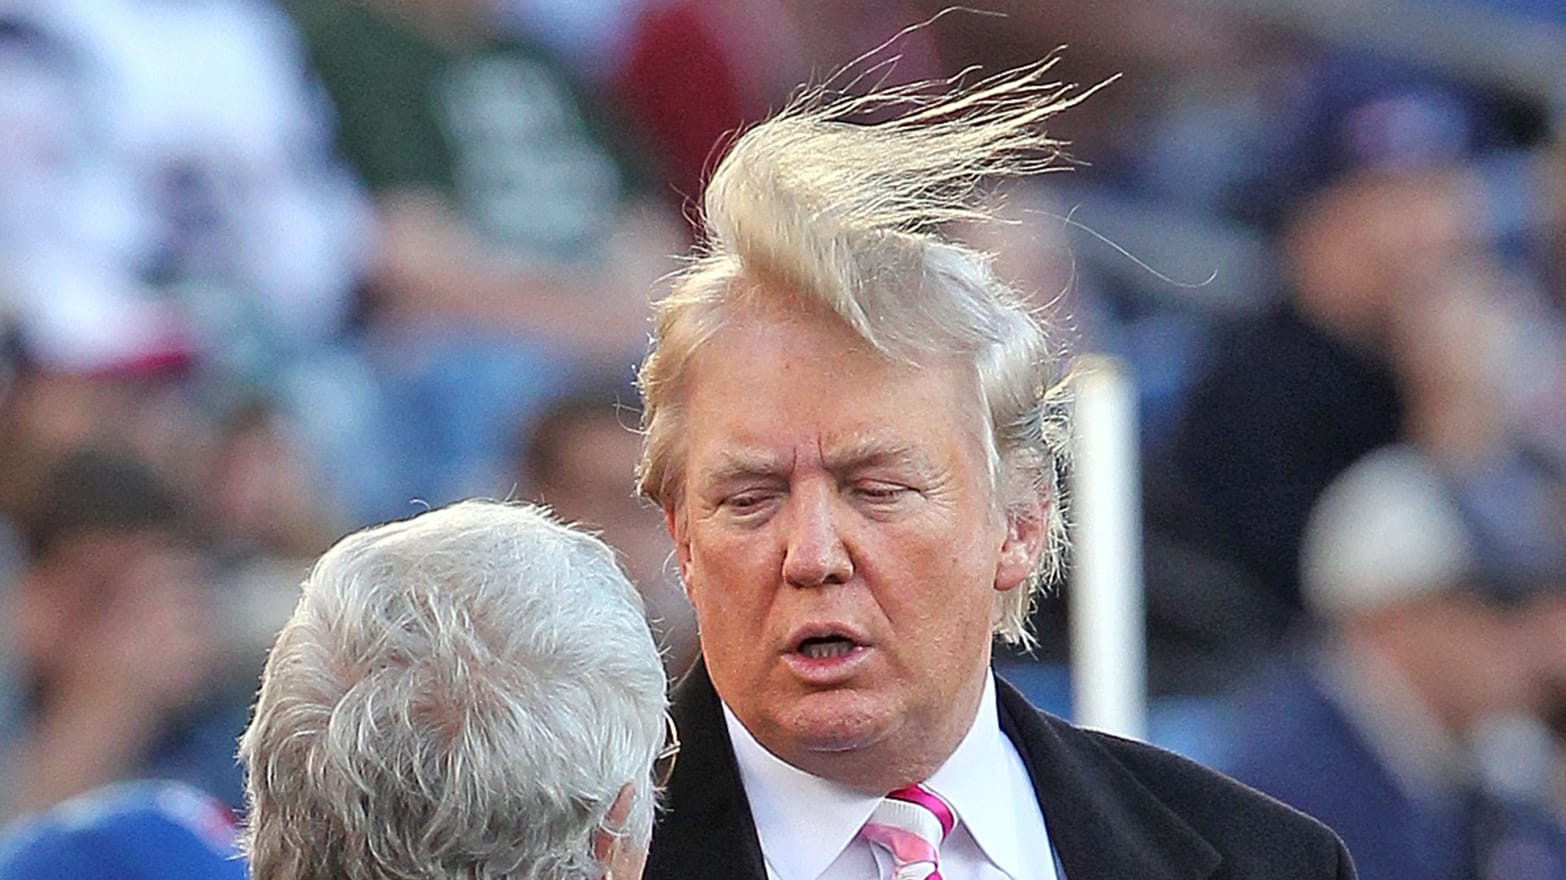 Can Trump's Hair Survive Inauguration Day?